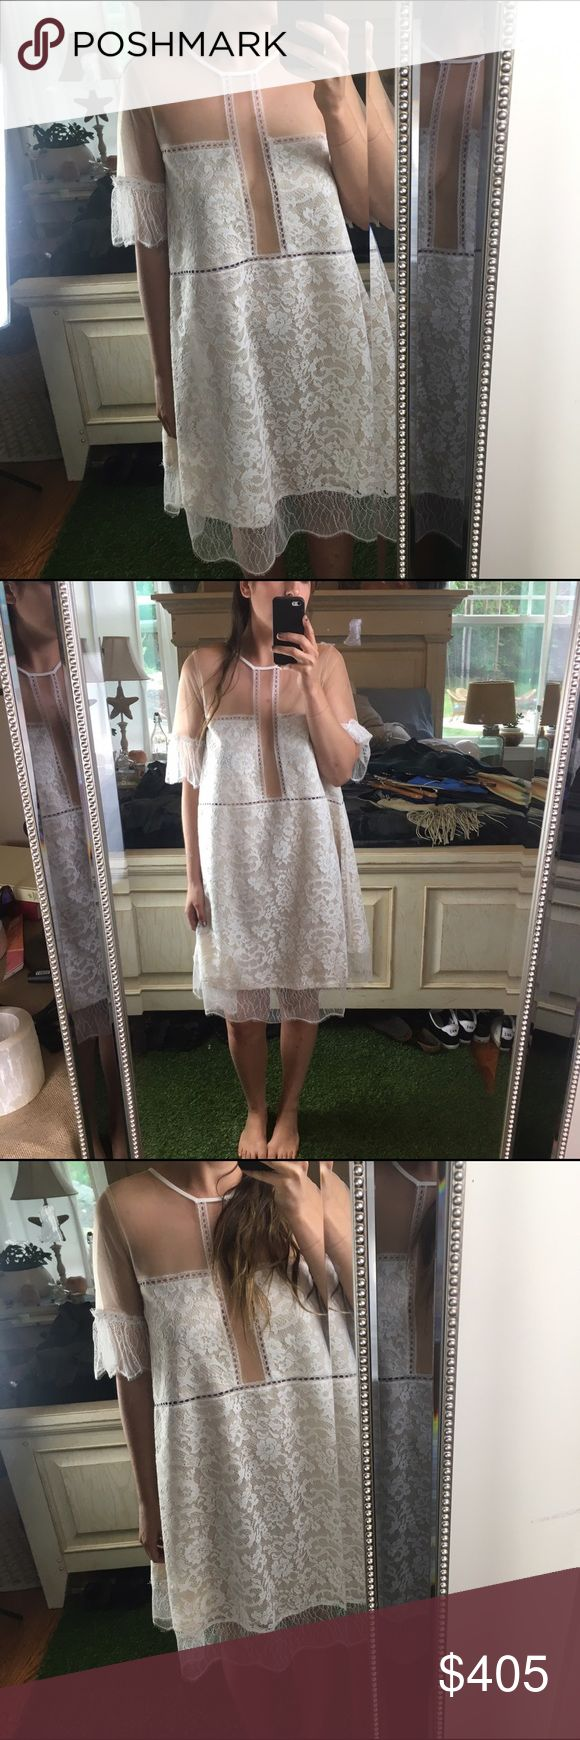 Red Valentino dress!!! Red Valentino dress model photos. Dress listing for sale in closet. 💗 RED Valentino Dresses Mini